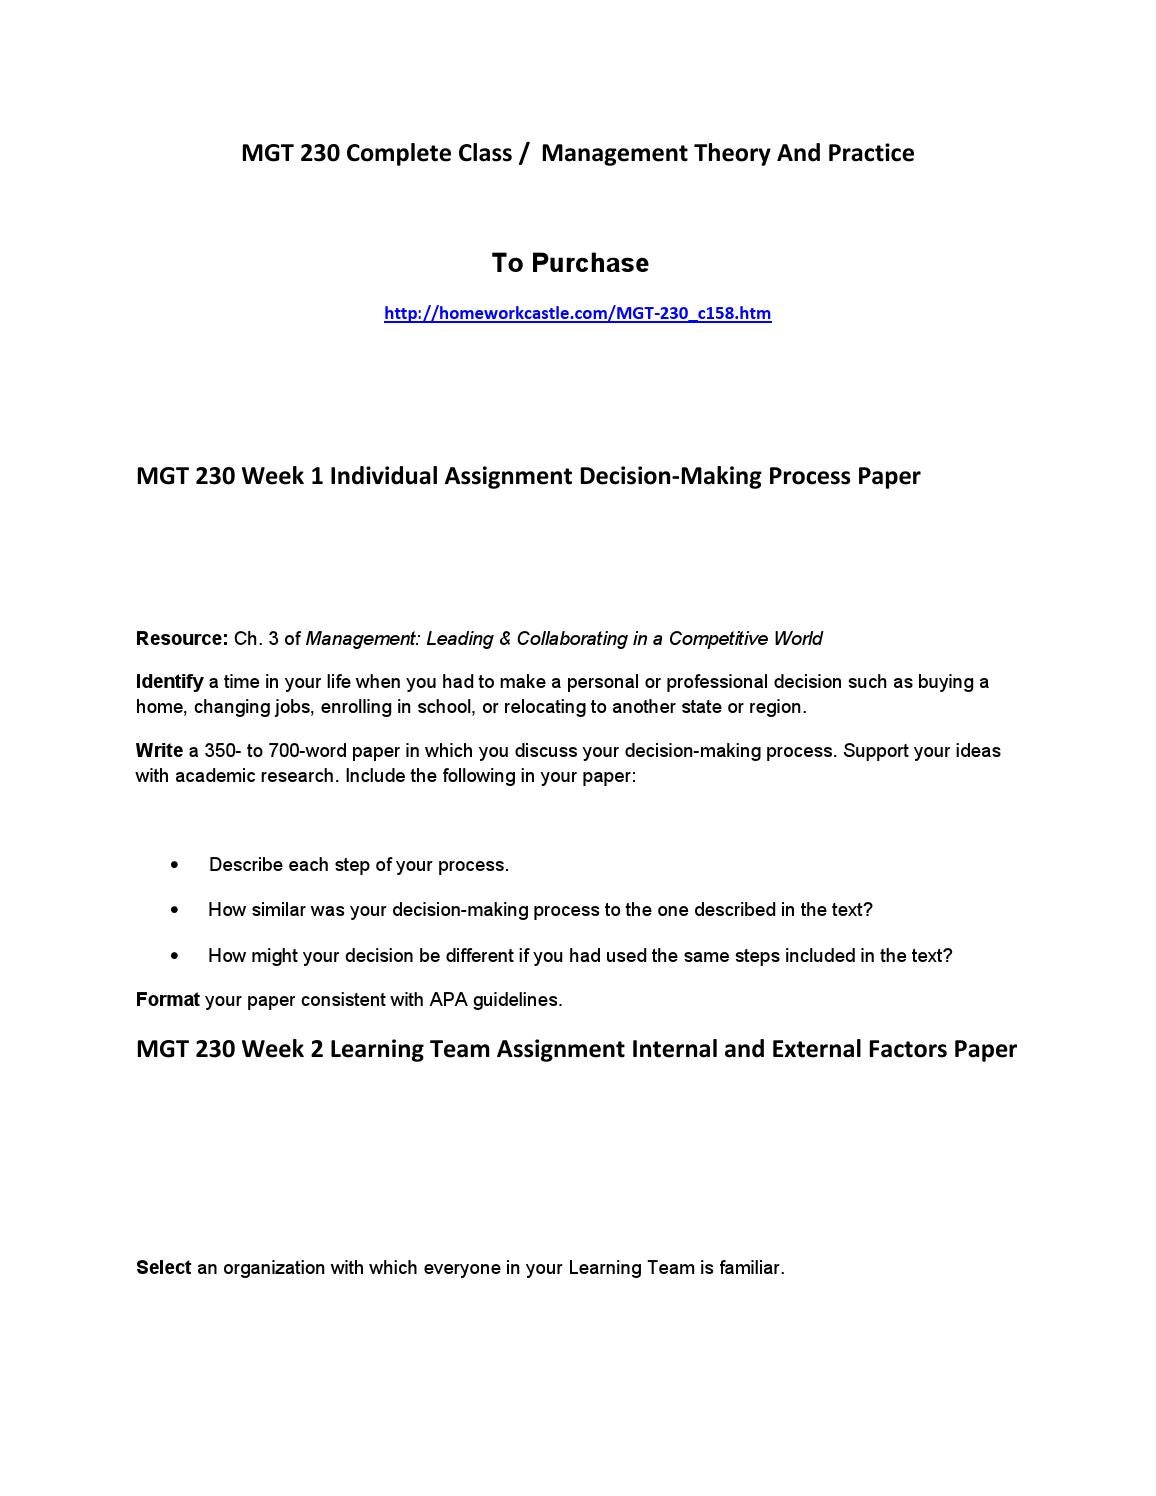 Purchase a research paper steps to publish